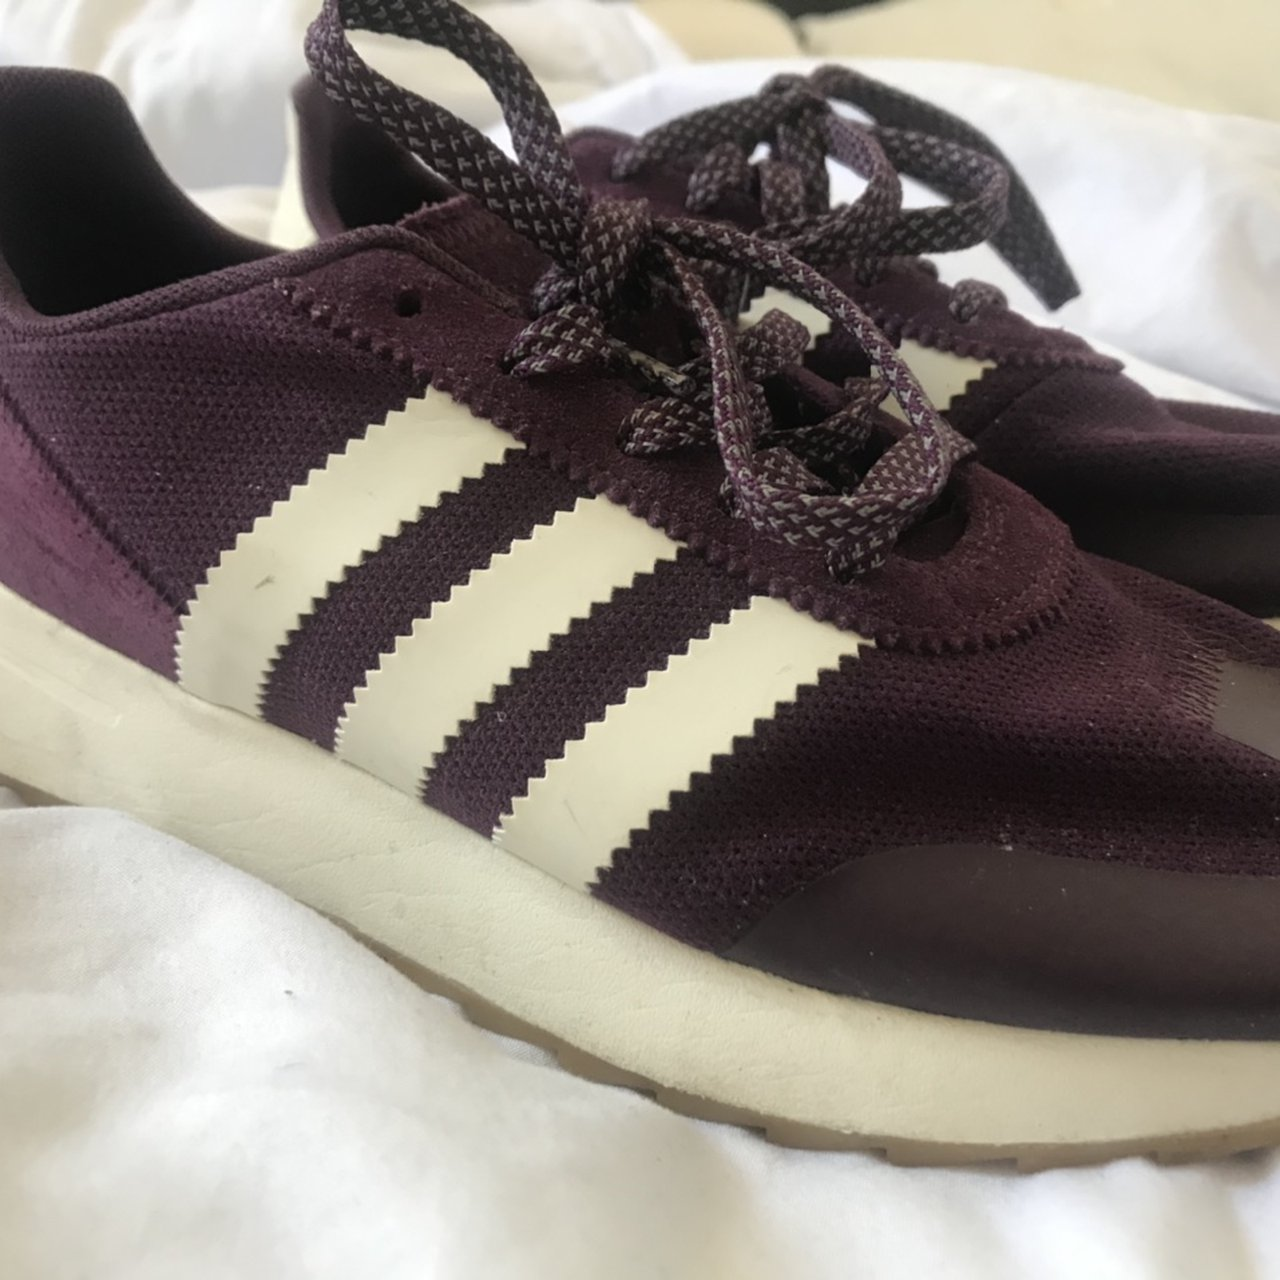 Plum adidas trainers. Size 6. Great